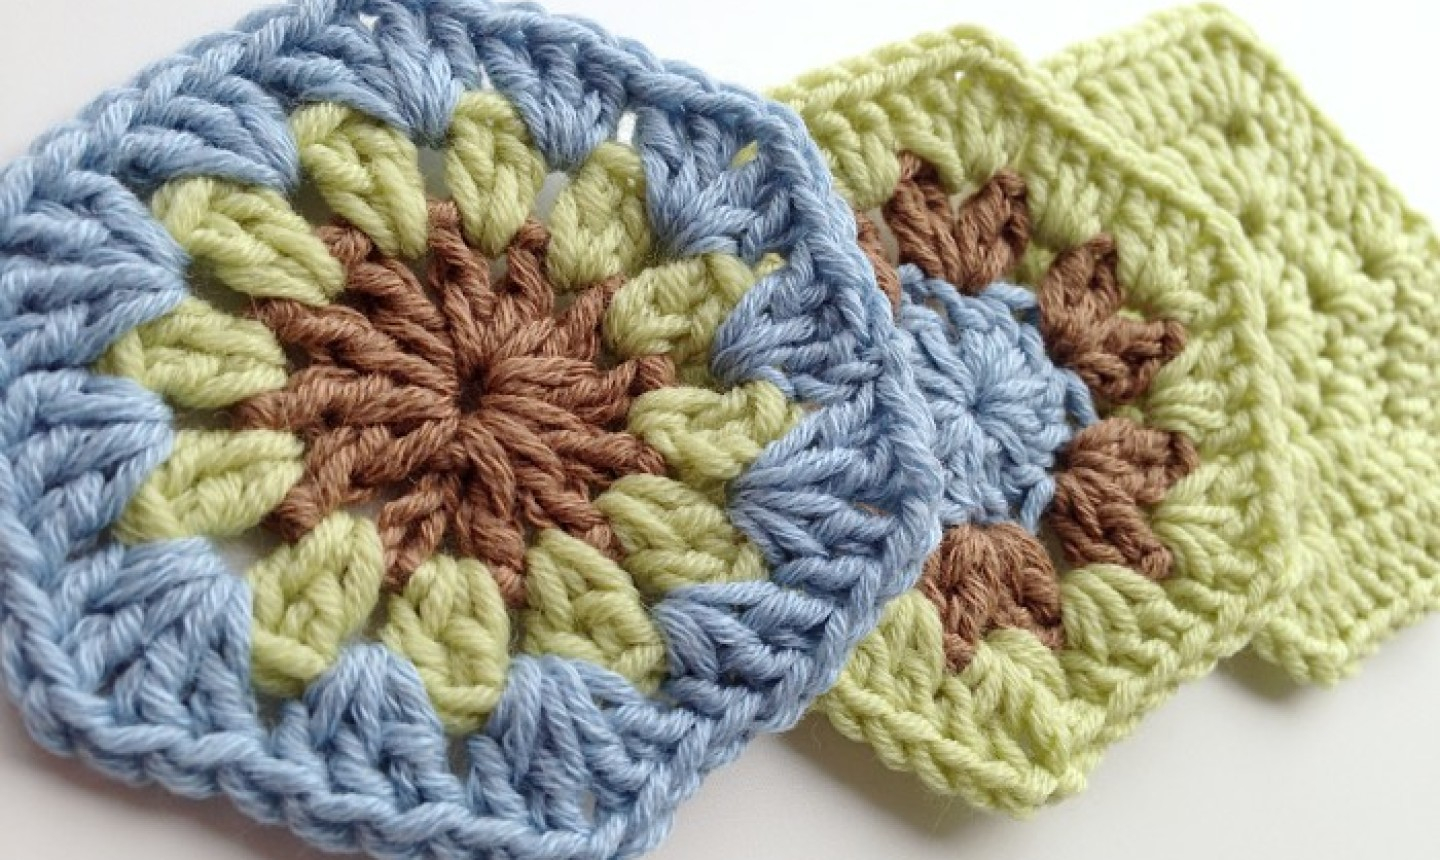 Things To Crochet  These 3 Hexagon Crochet Motifs Are Anything But Square